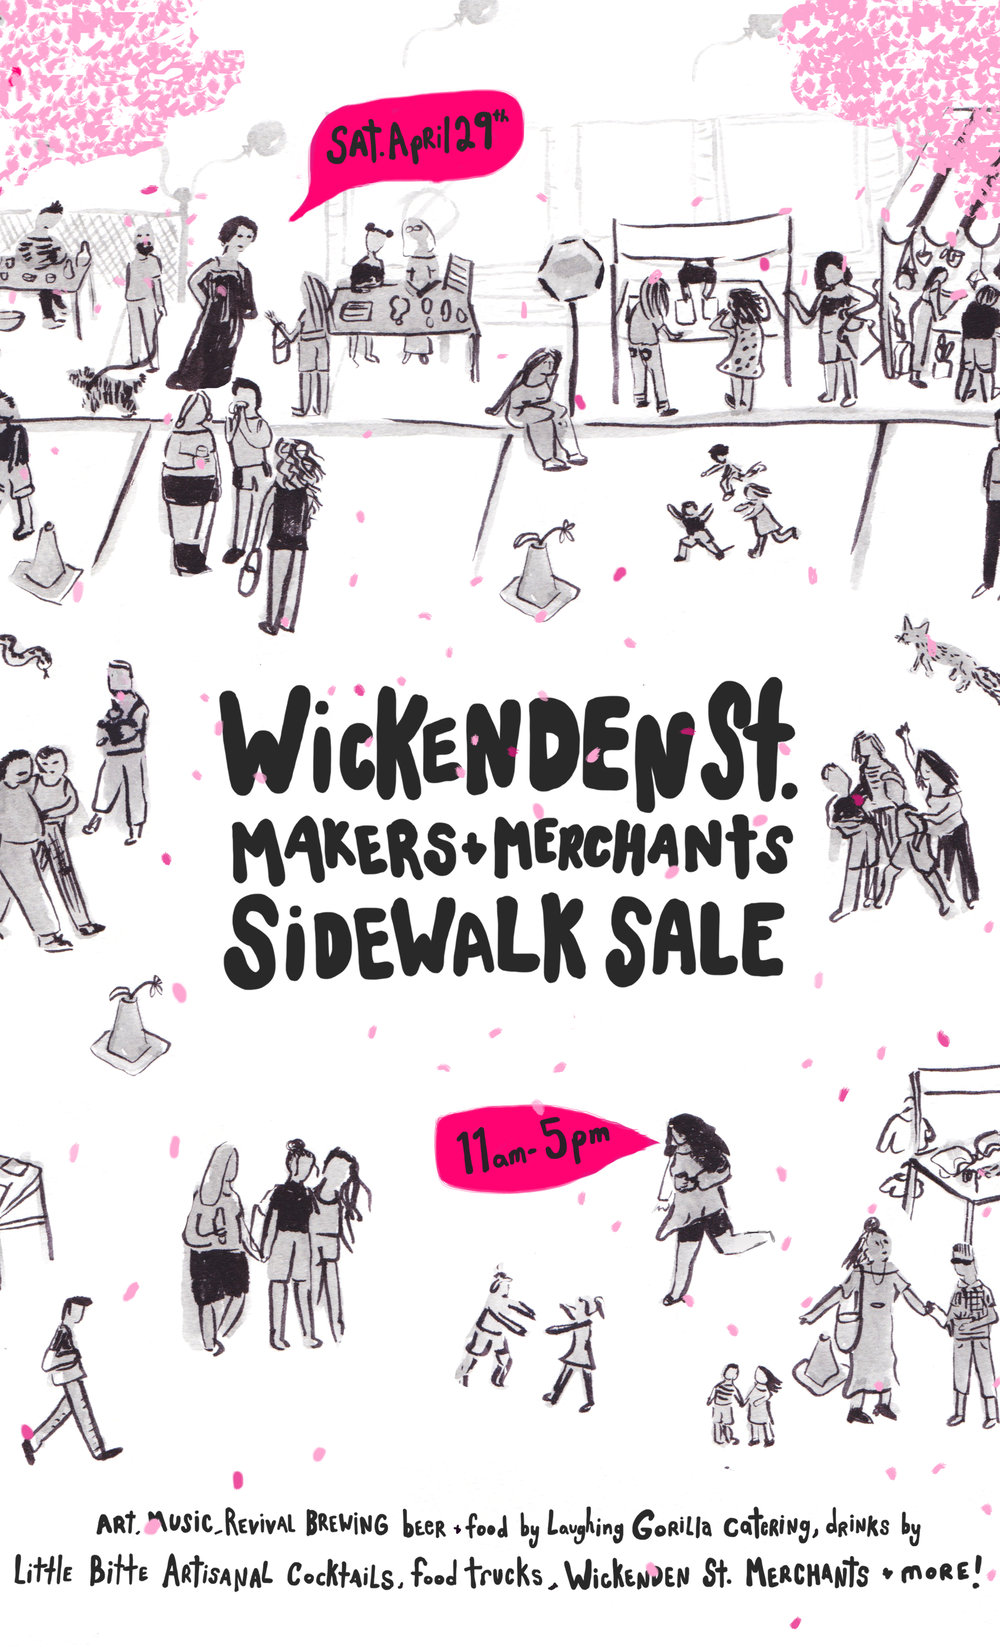 Wickenden Area Merchants Association